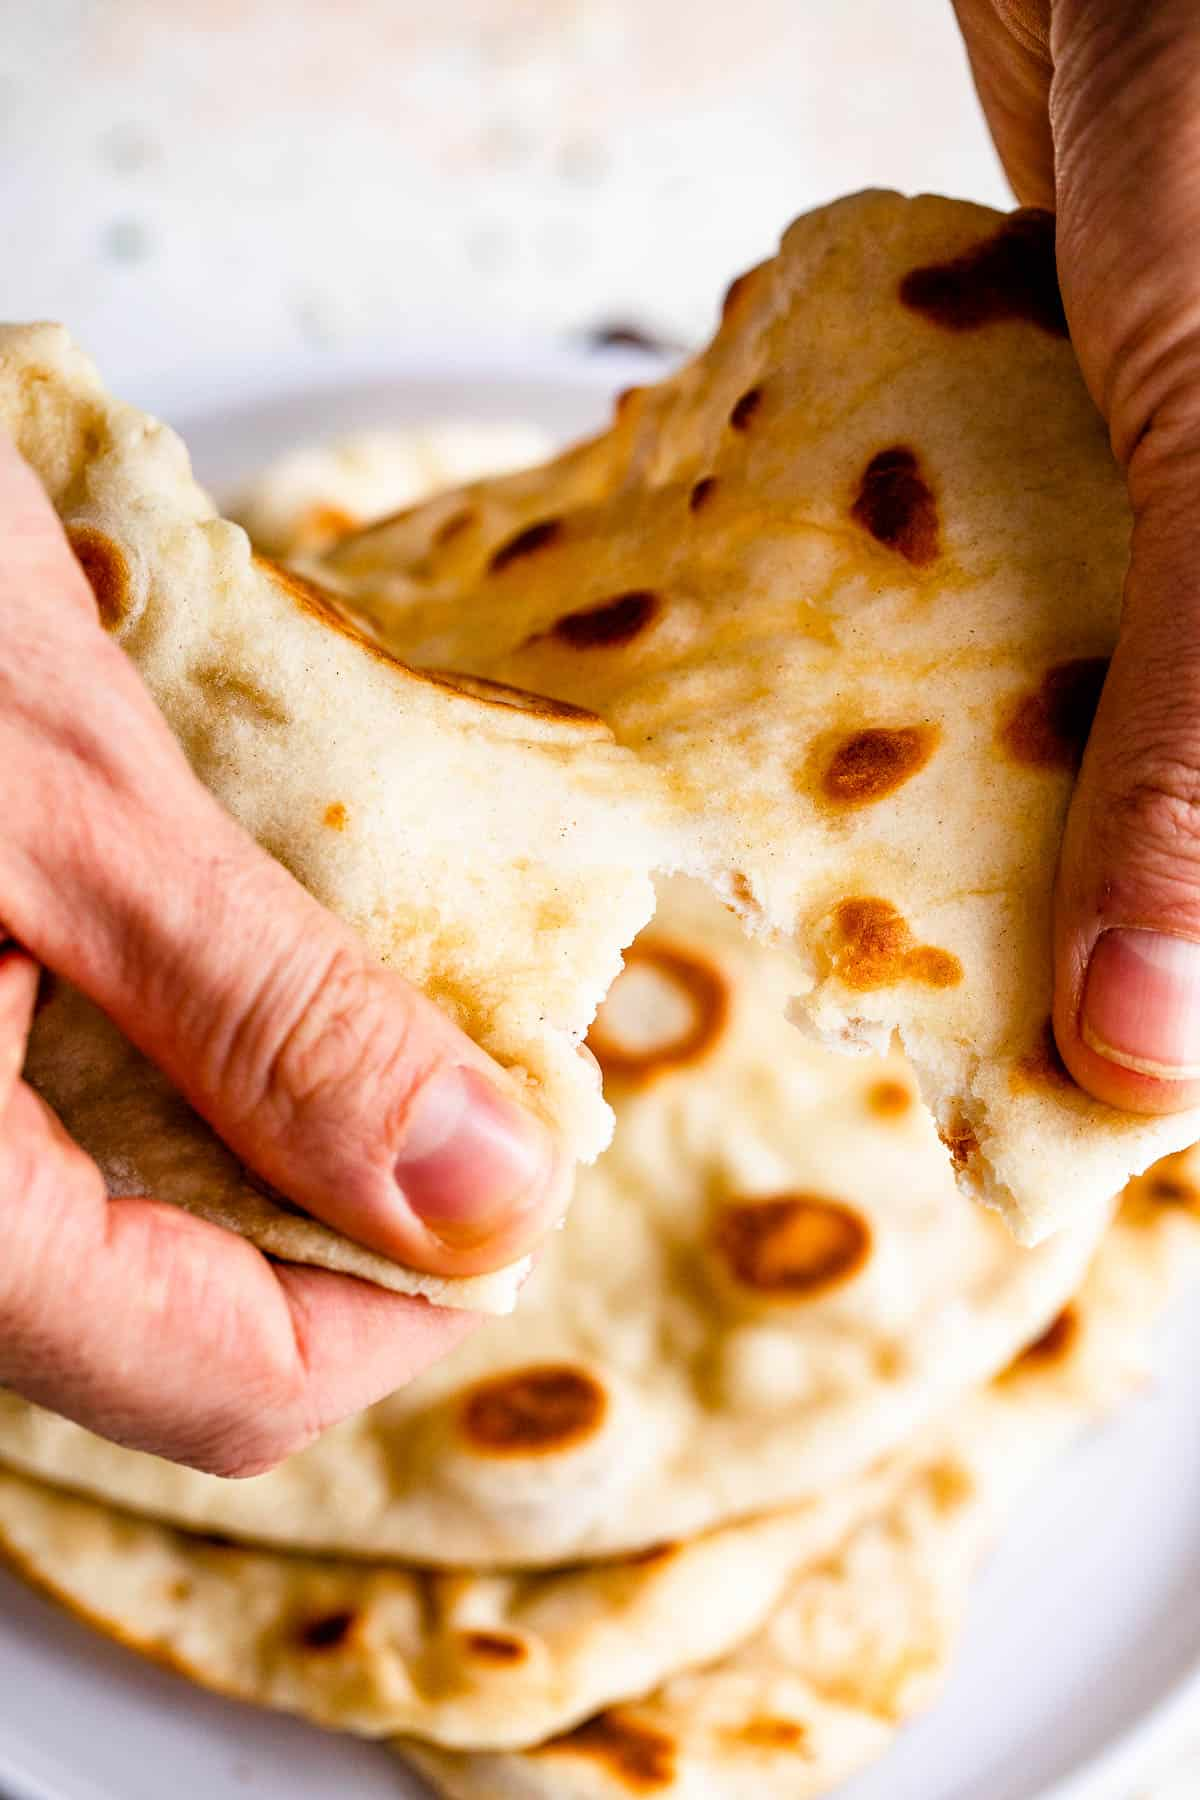 tearing naan bread with hands